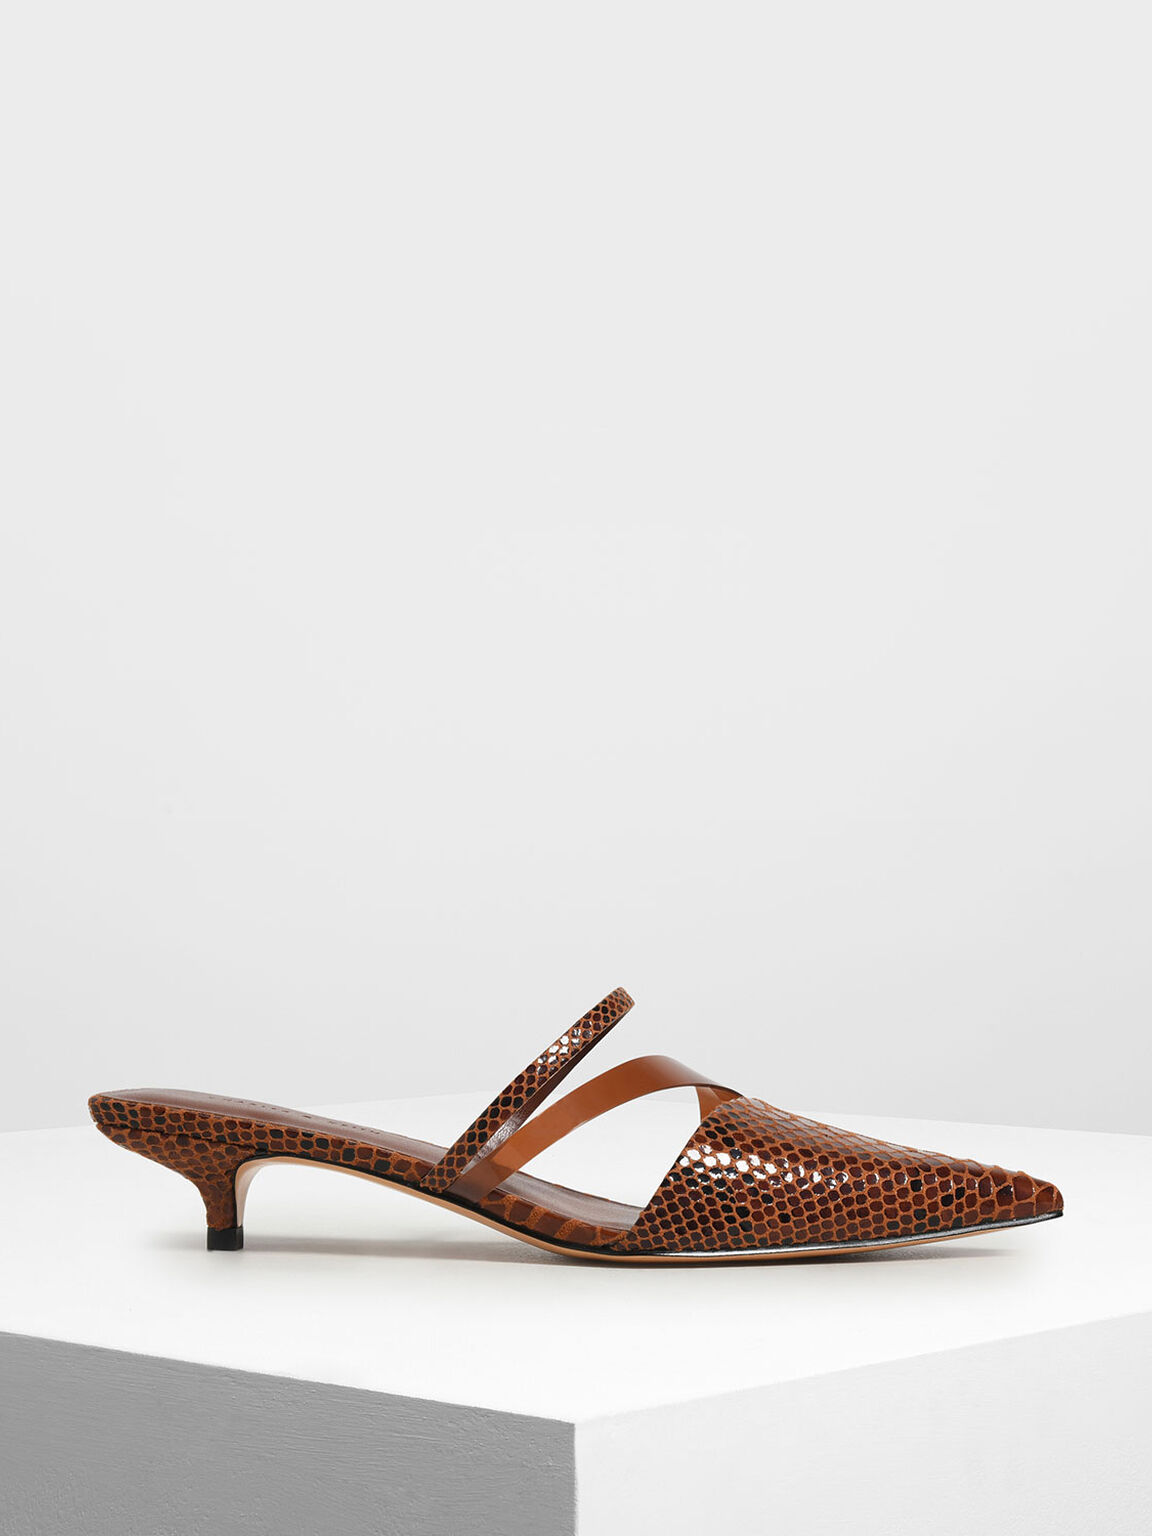 Croc-Effect Asymmetrical Kitten Heel Mules, Dark Brown, hi-res